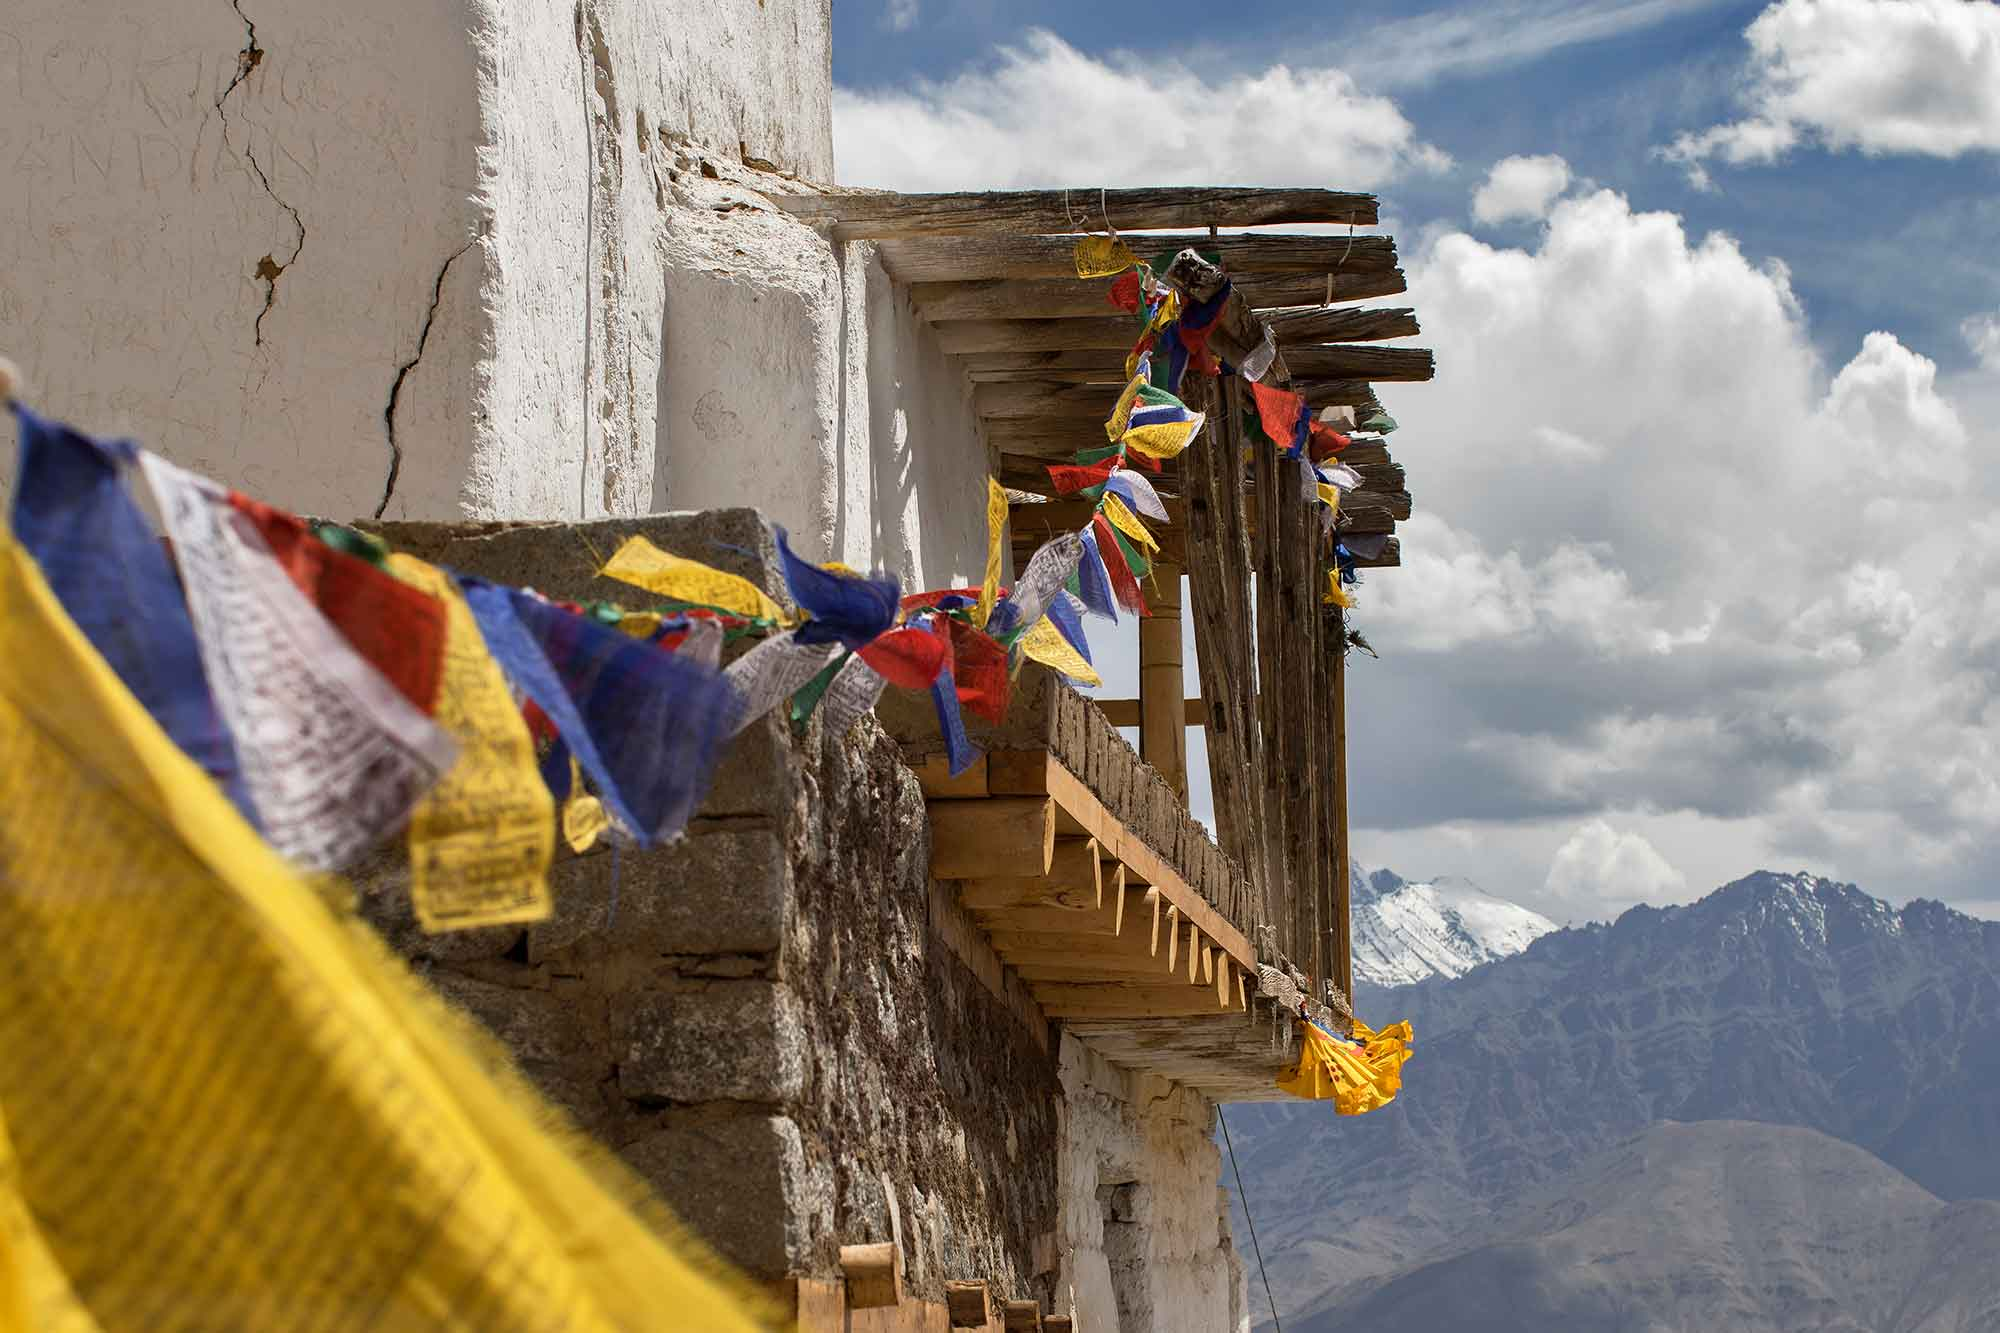 namgyal-tsemo-monastery-prayer-flags-leh-ladakh-kashmir